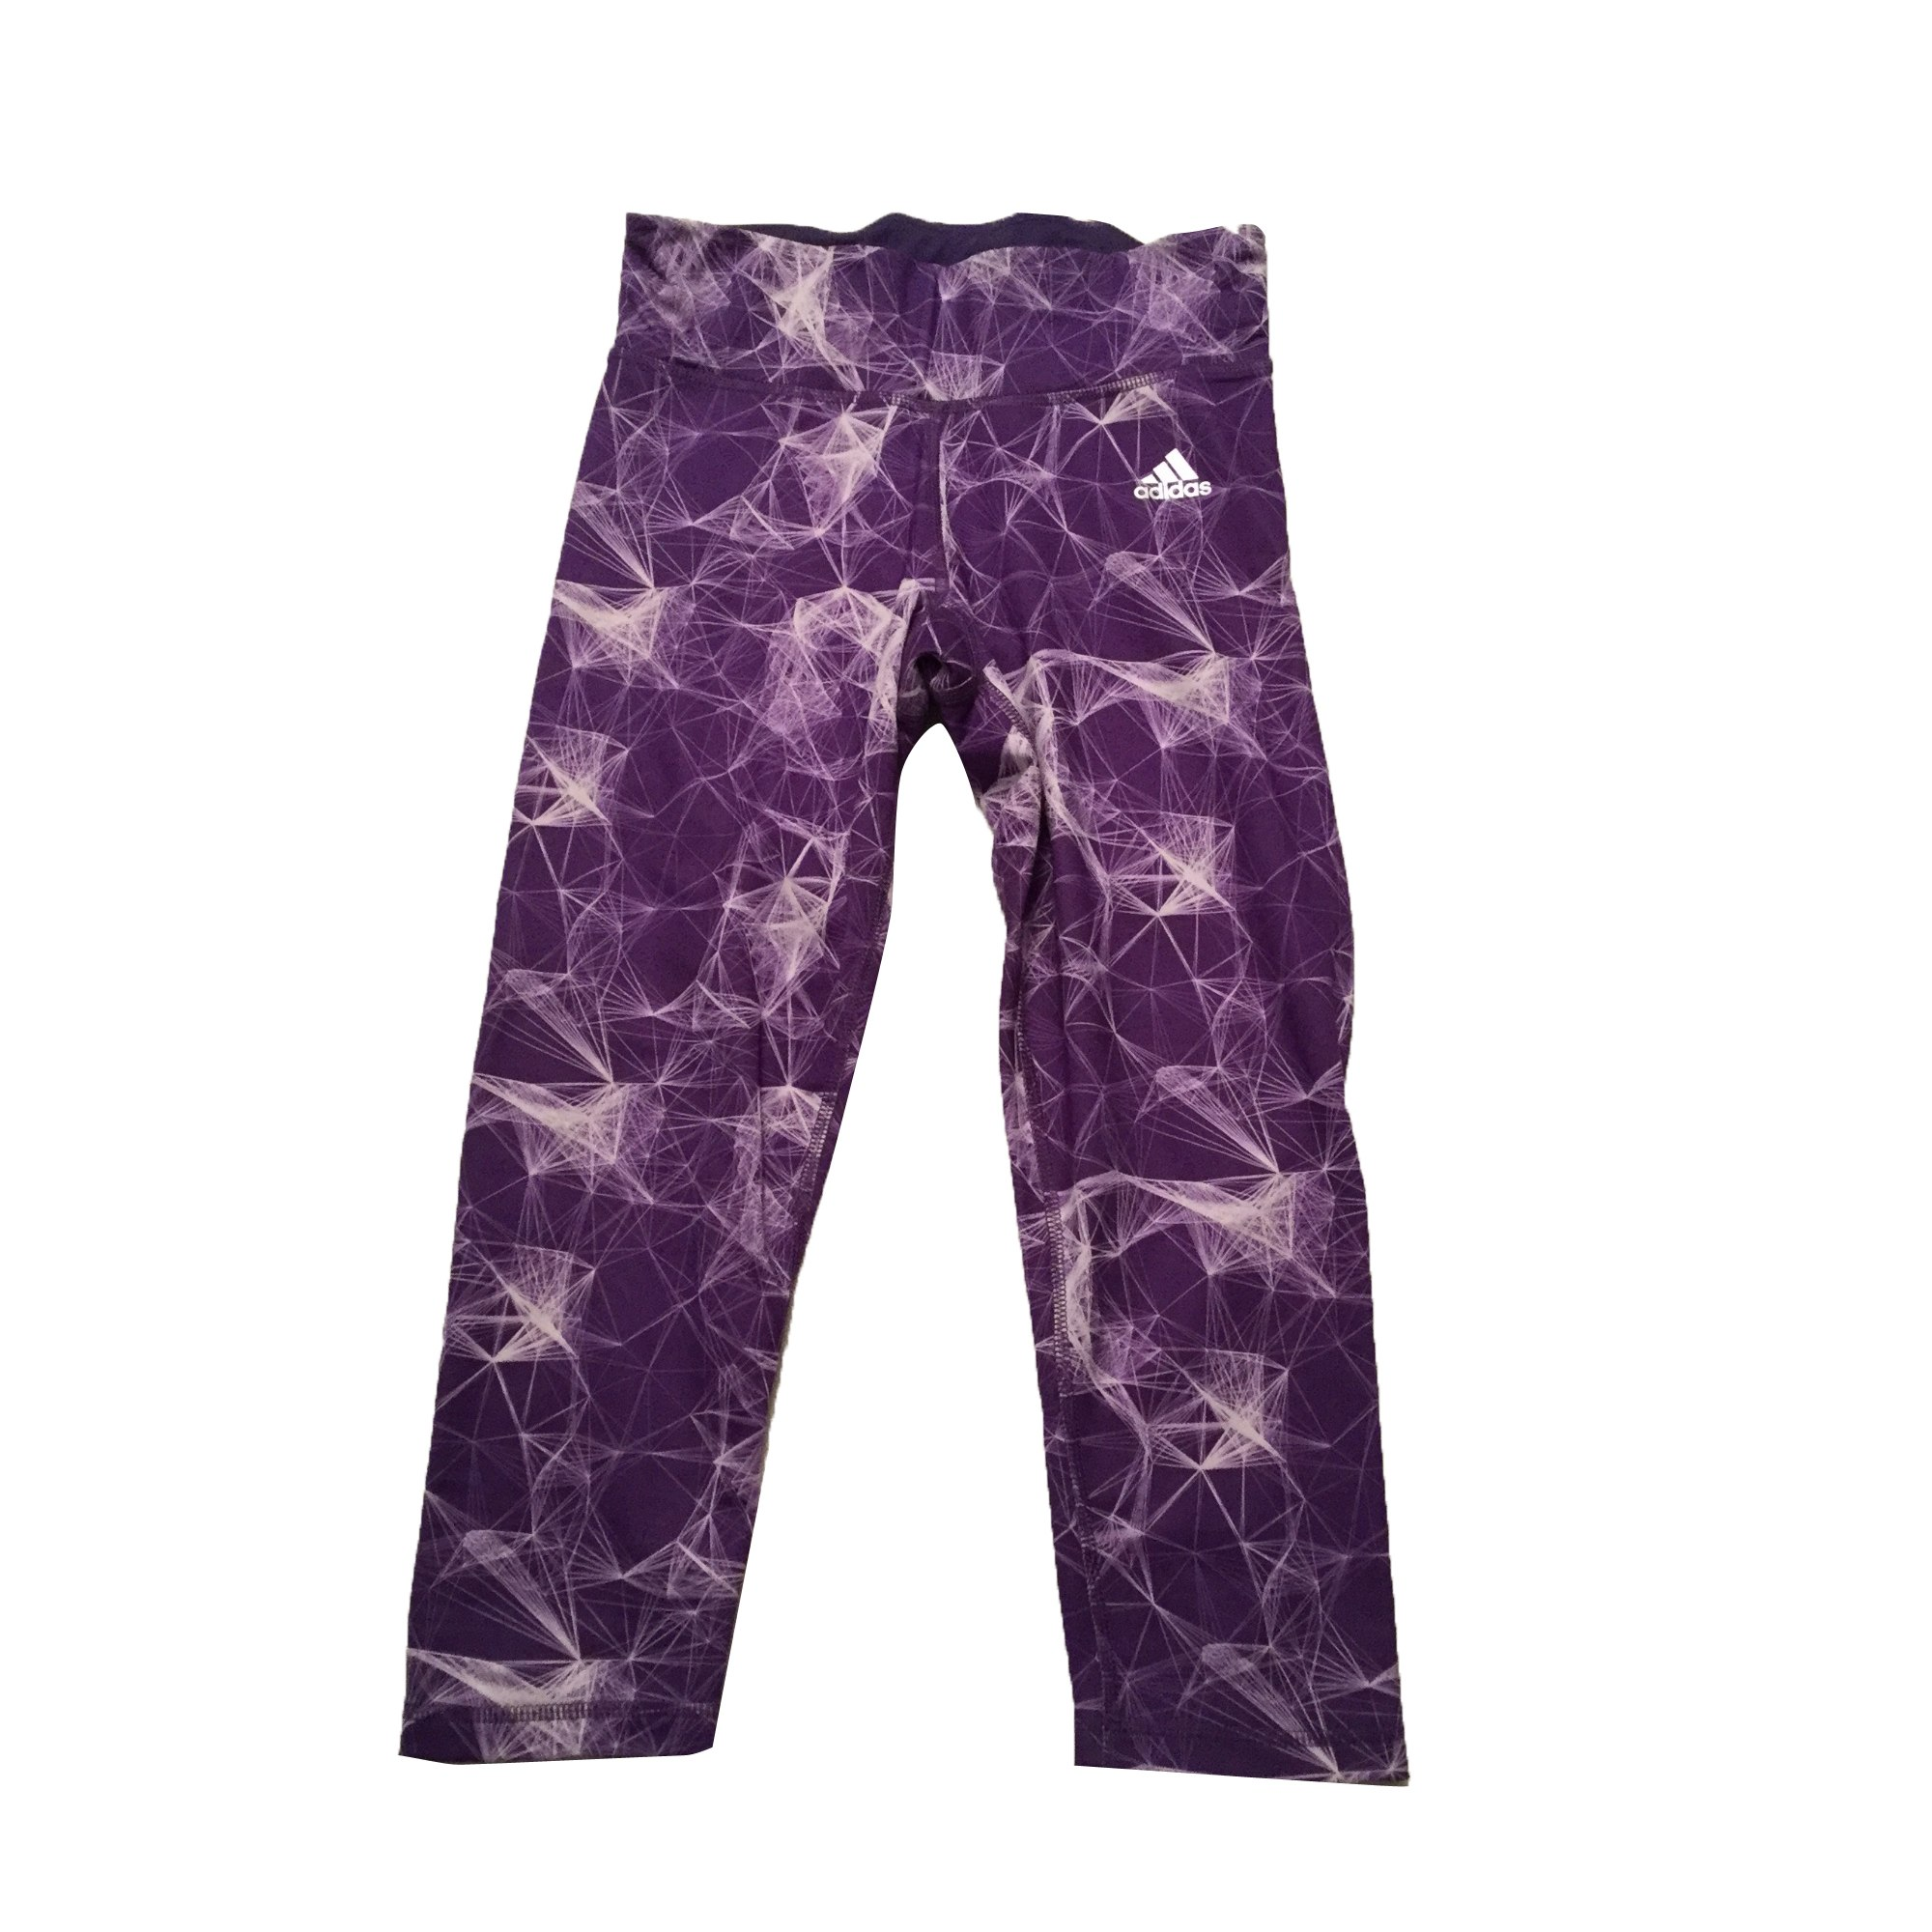 Yoga Pants ADIDAS Purple, mauve, lavender